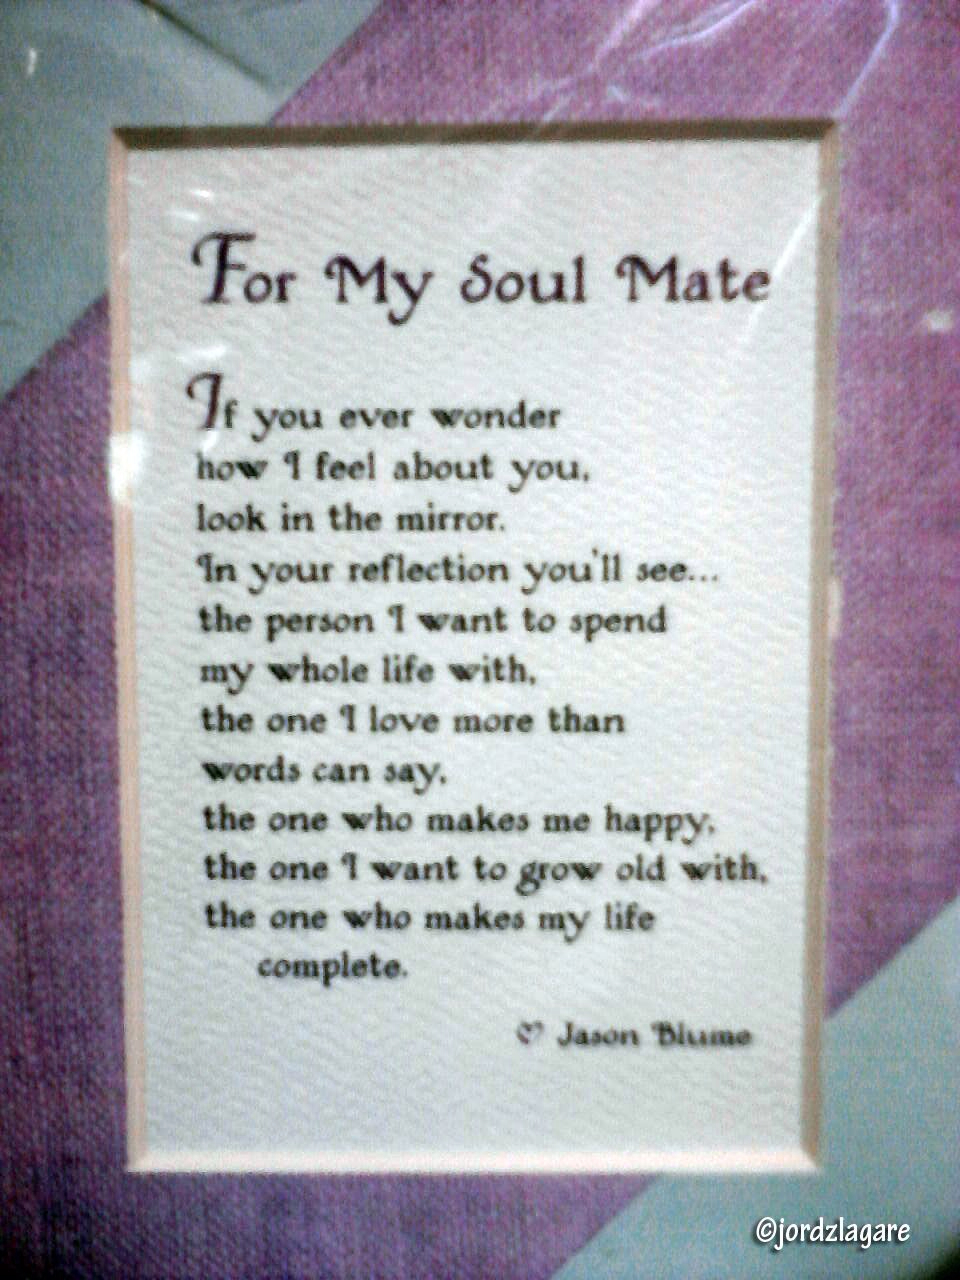 Soulmates Love Quotes About Life: Bible Quotes On Soulmates. QuotesGram